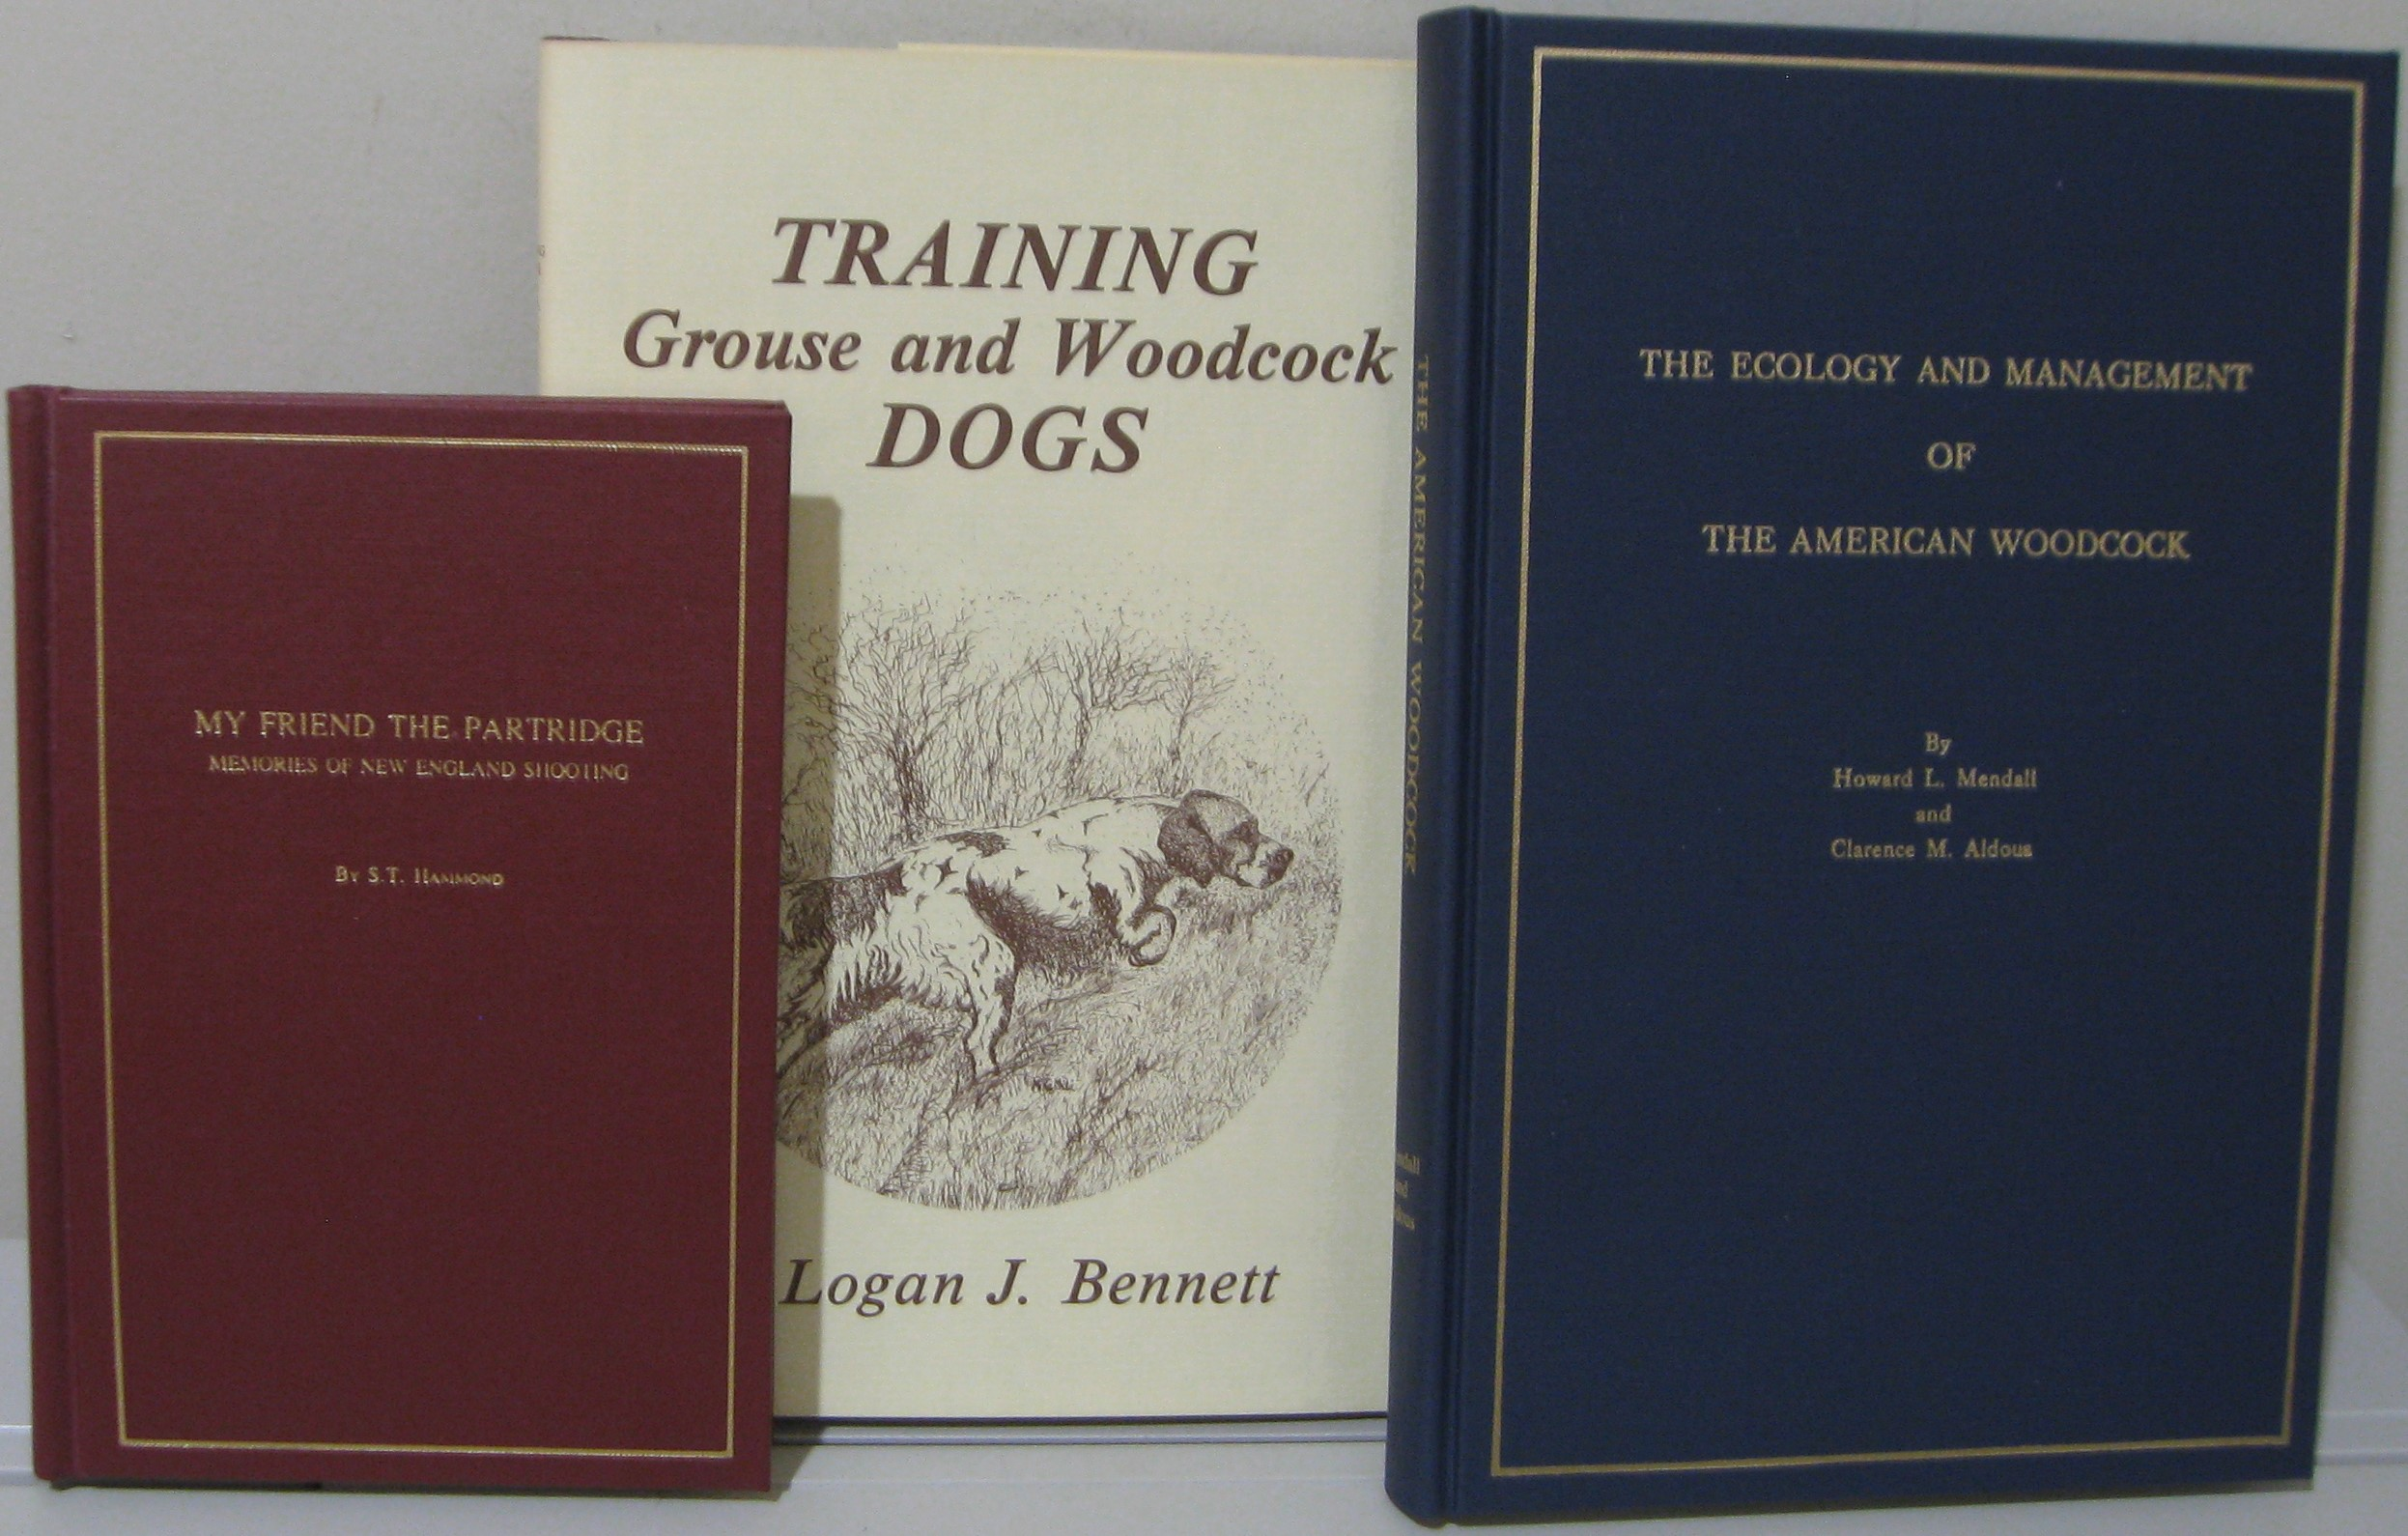 Image for MY FRIEND THE PARTRIDGE - MEMORIES OF NEW ENGLAND SHOOTING; TRAINING GROUSE AND WOODCOCK DOGS; & THE ECOLOGY & MANAGEMENT OF THE AMERICAN WOODCOCK,